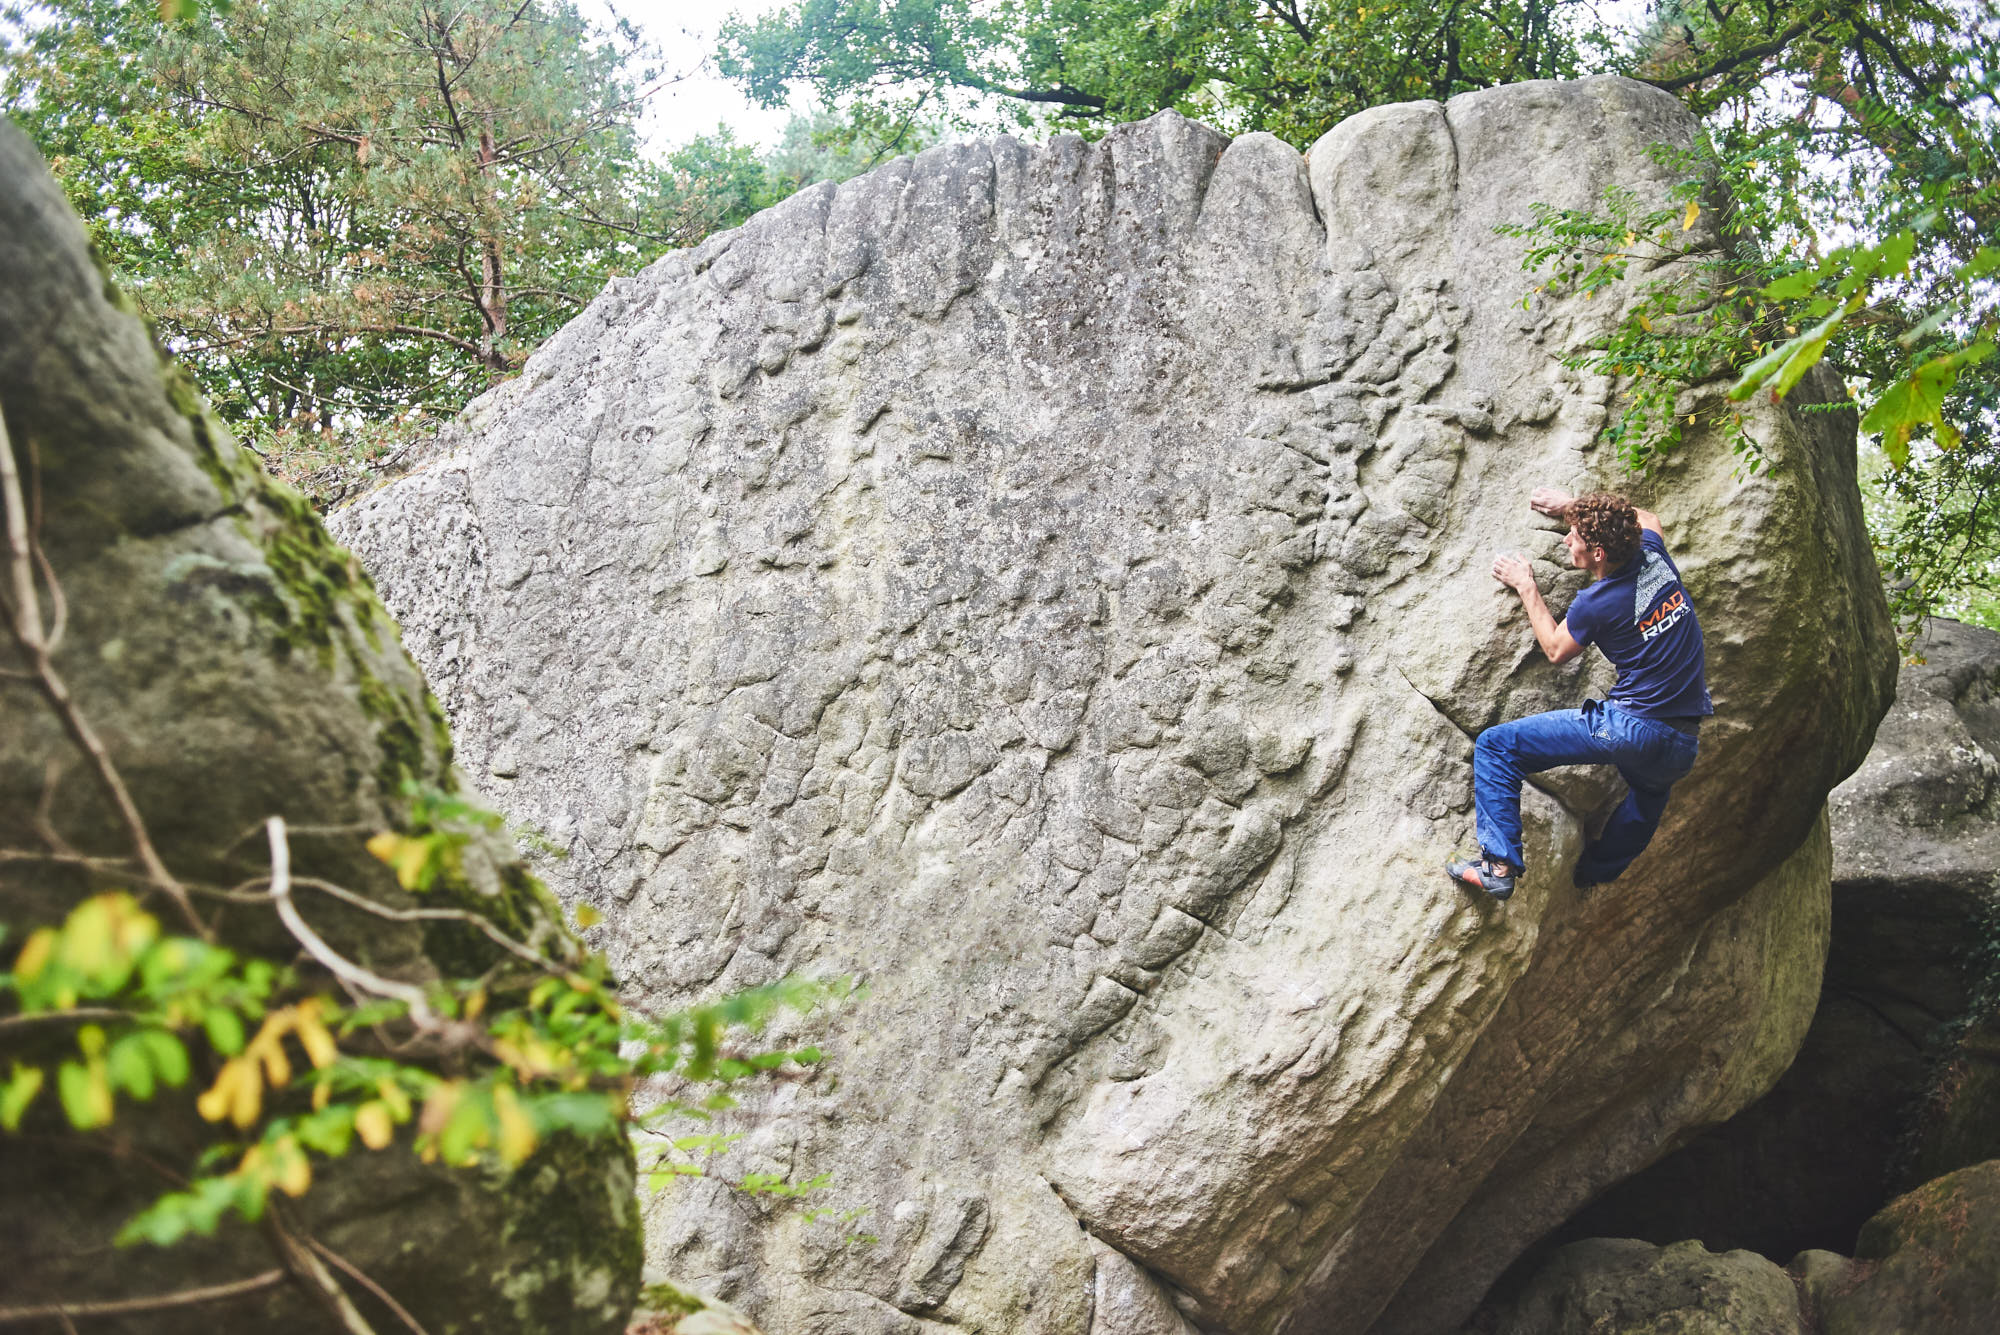 Mad Rock climber climbing a boulder problem in Fontainebleau